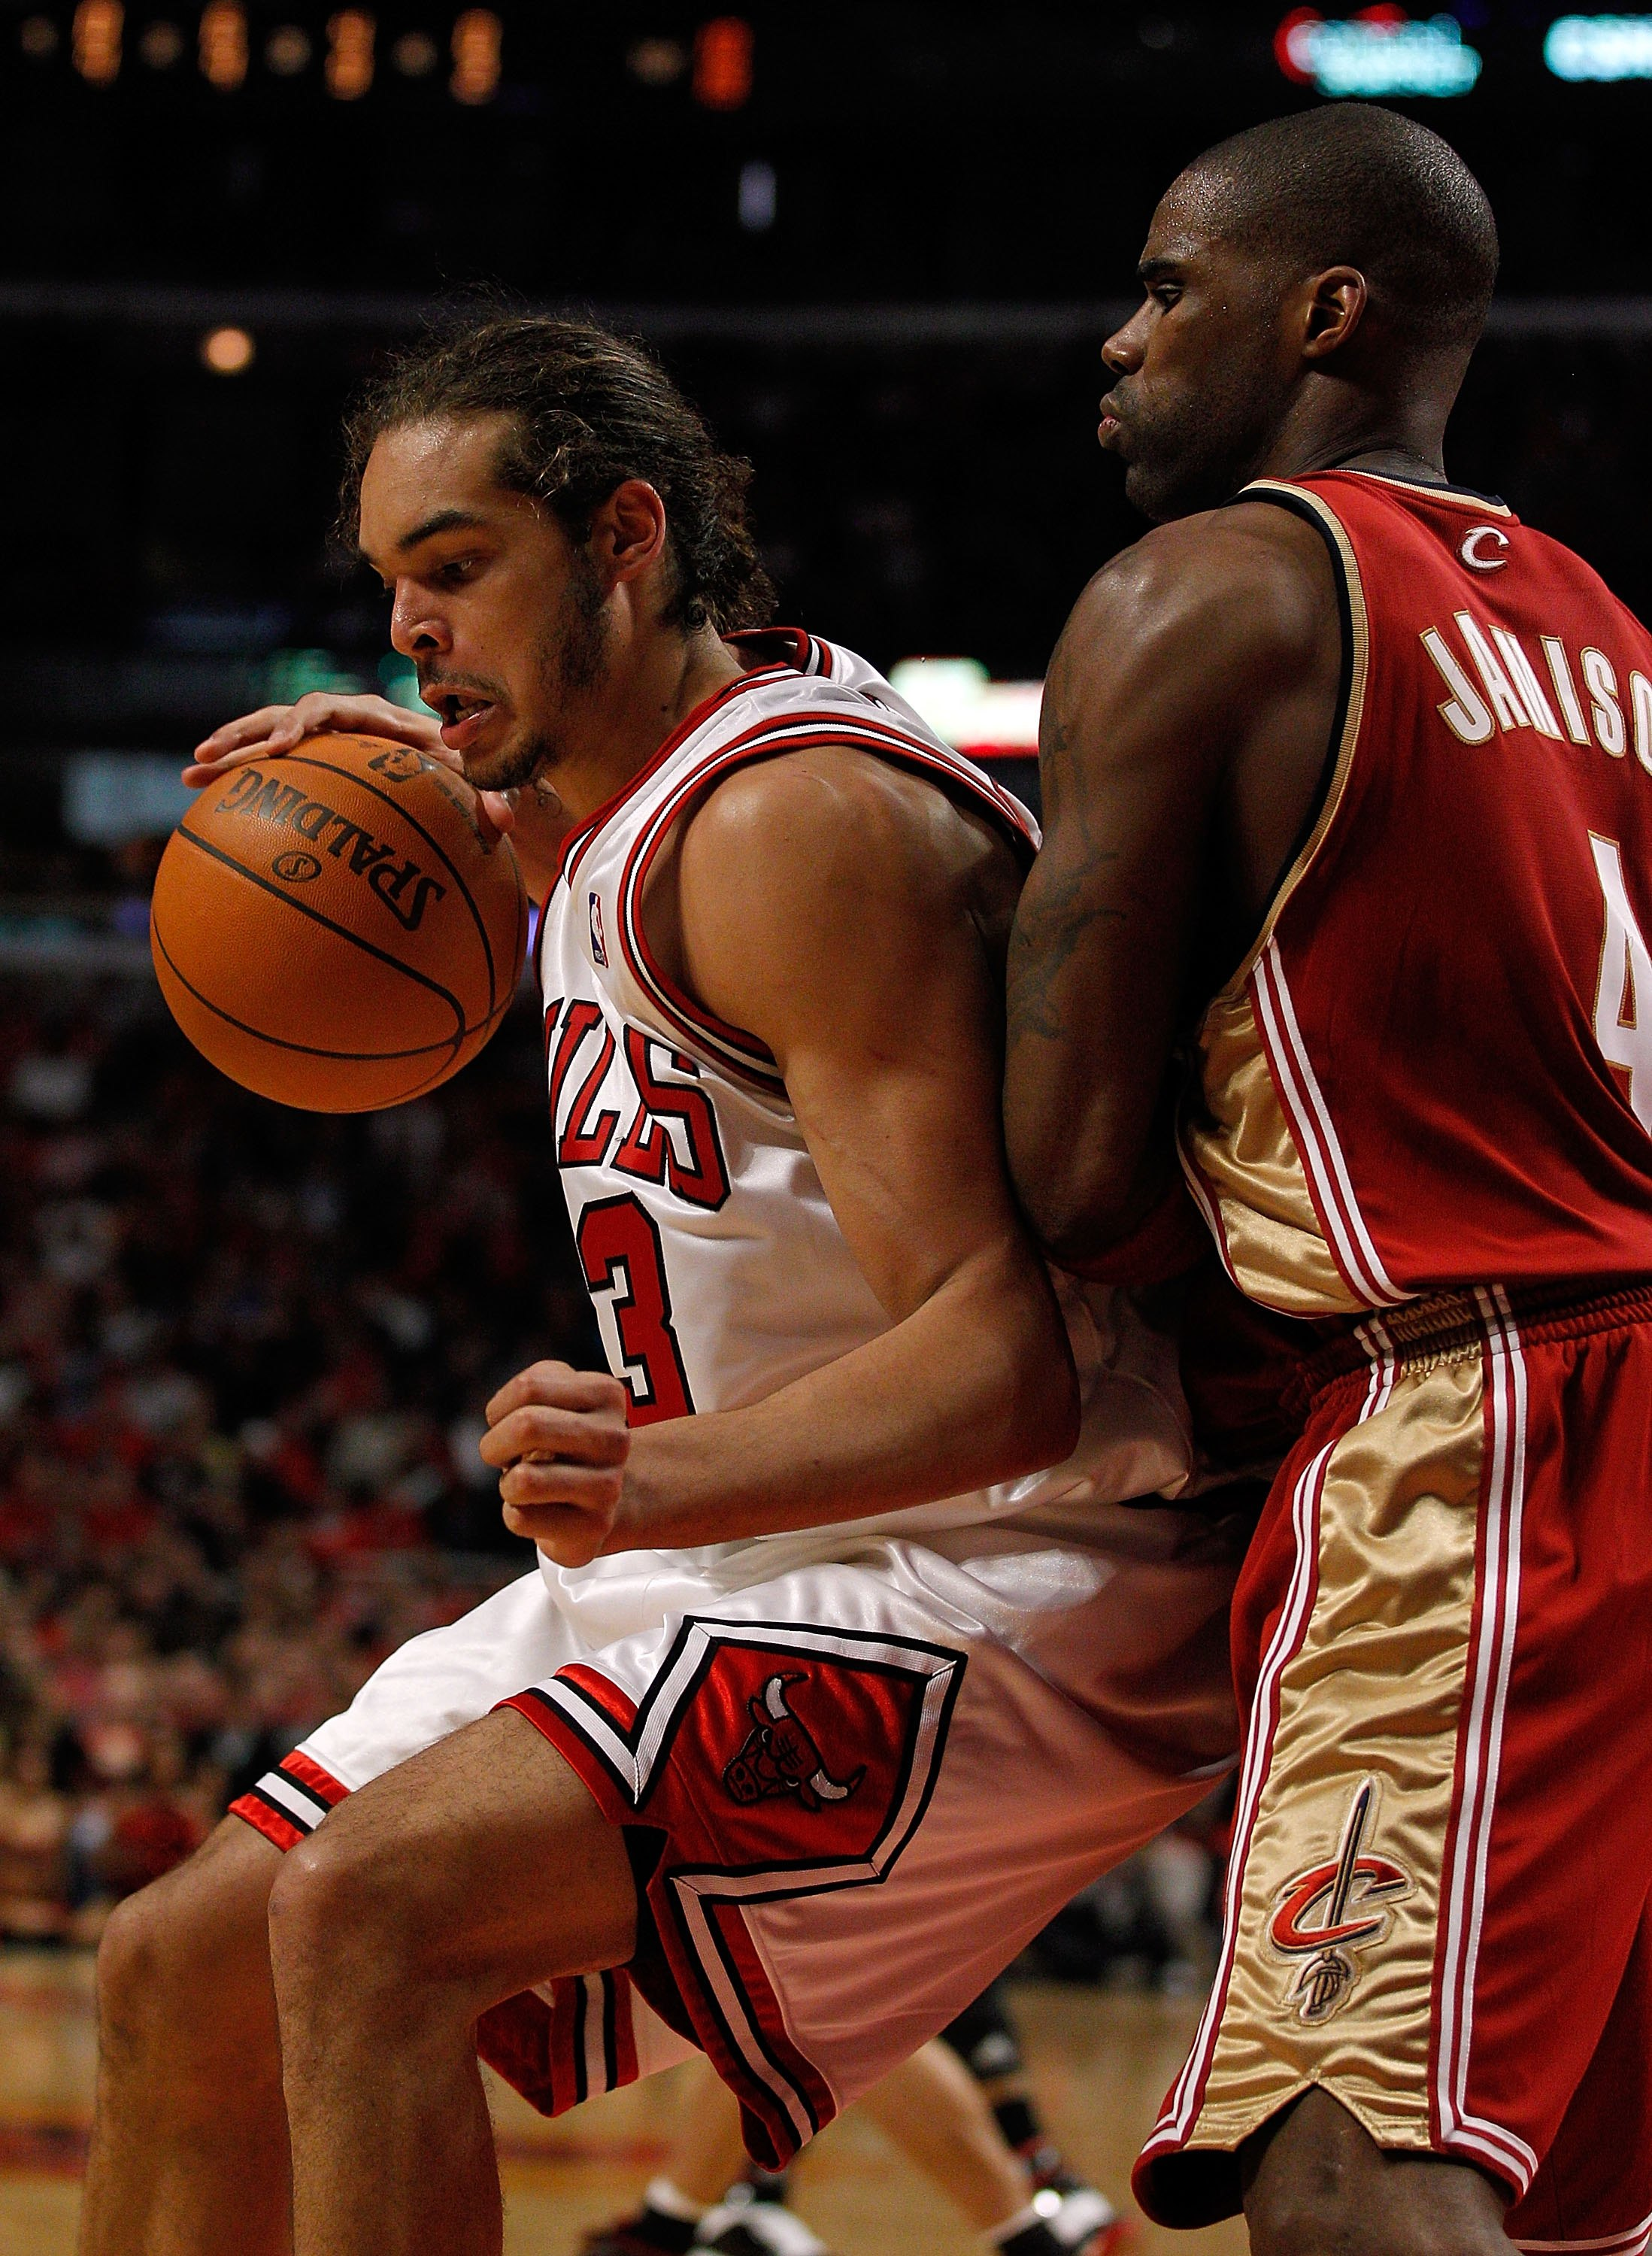 CHICAGO - APRIL 25: Joakim Noah #13 of the Chicago Bulls moves against Antawn Jamison #4 of the Cleveland Cavaliers in Game Four of the Eastern Conference Quarterfinals during the 2010 NBA Playoffs at the United Center on April 25, 2010 in Chicago, Illino